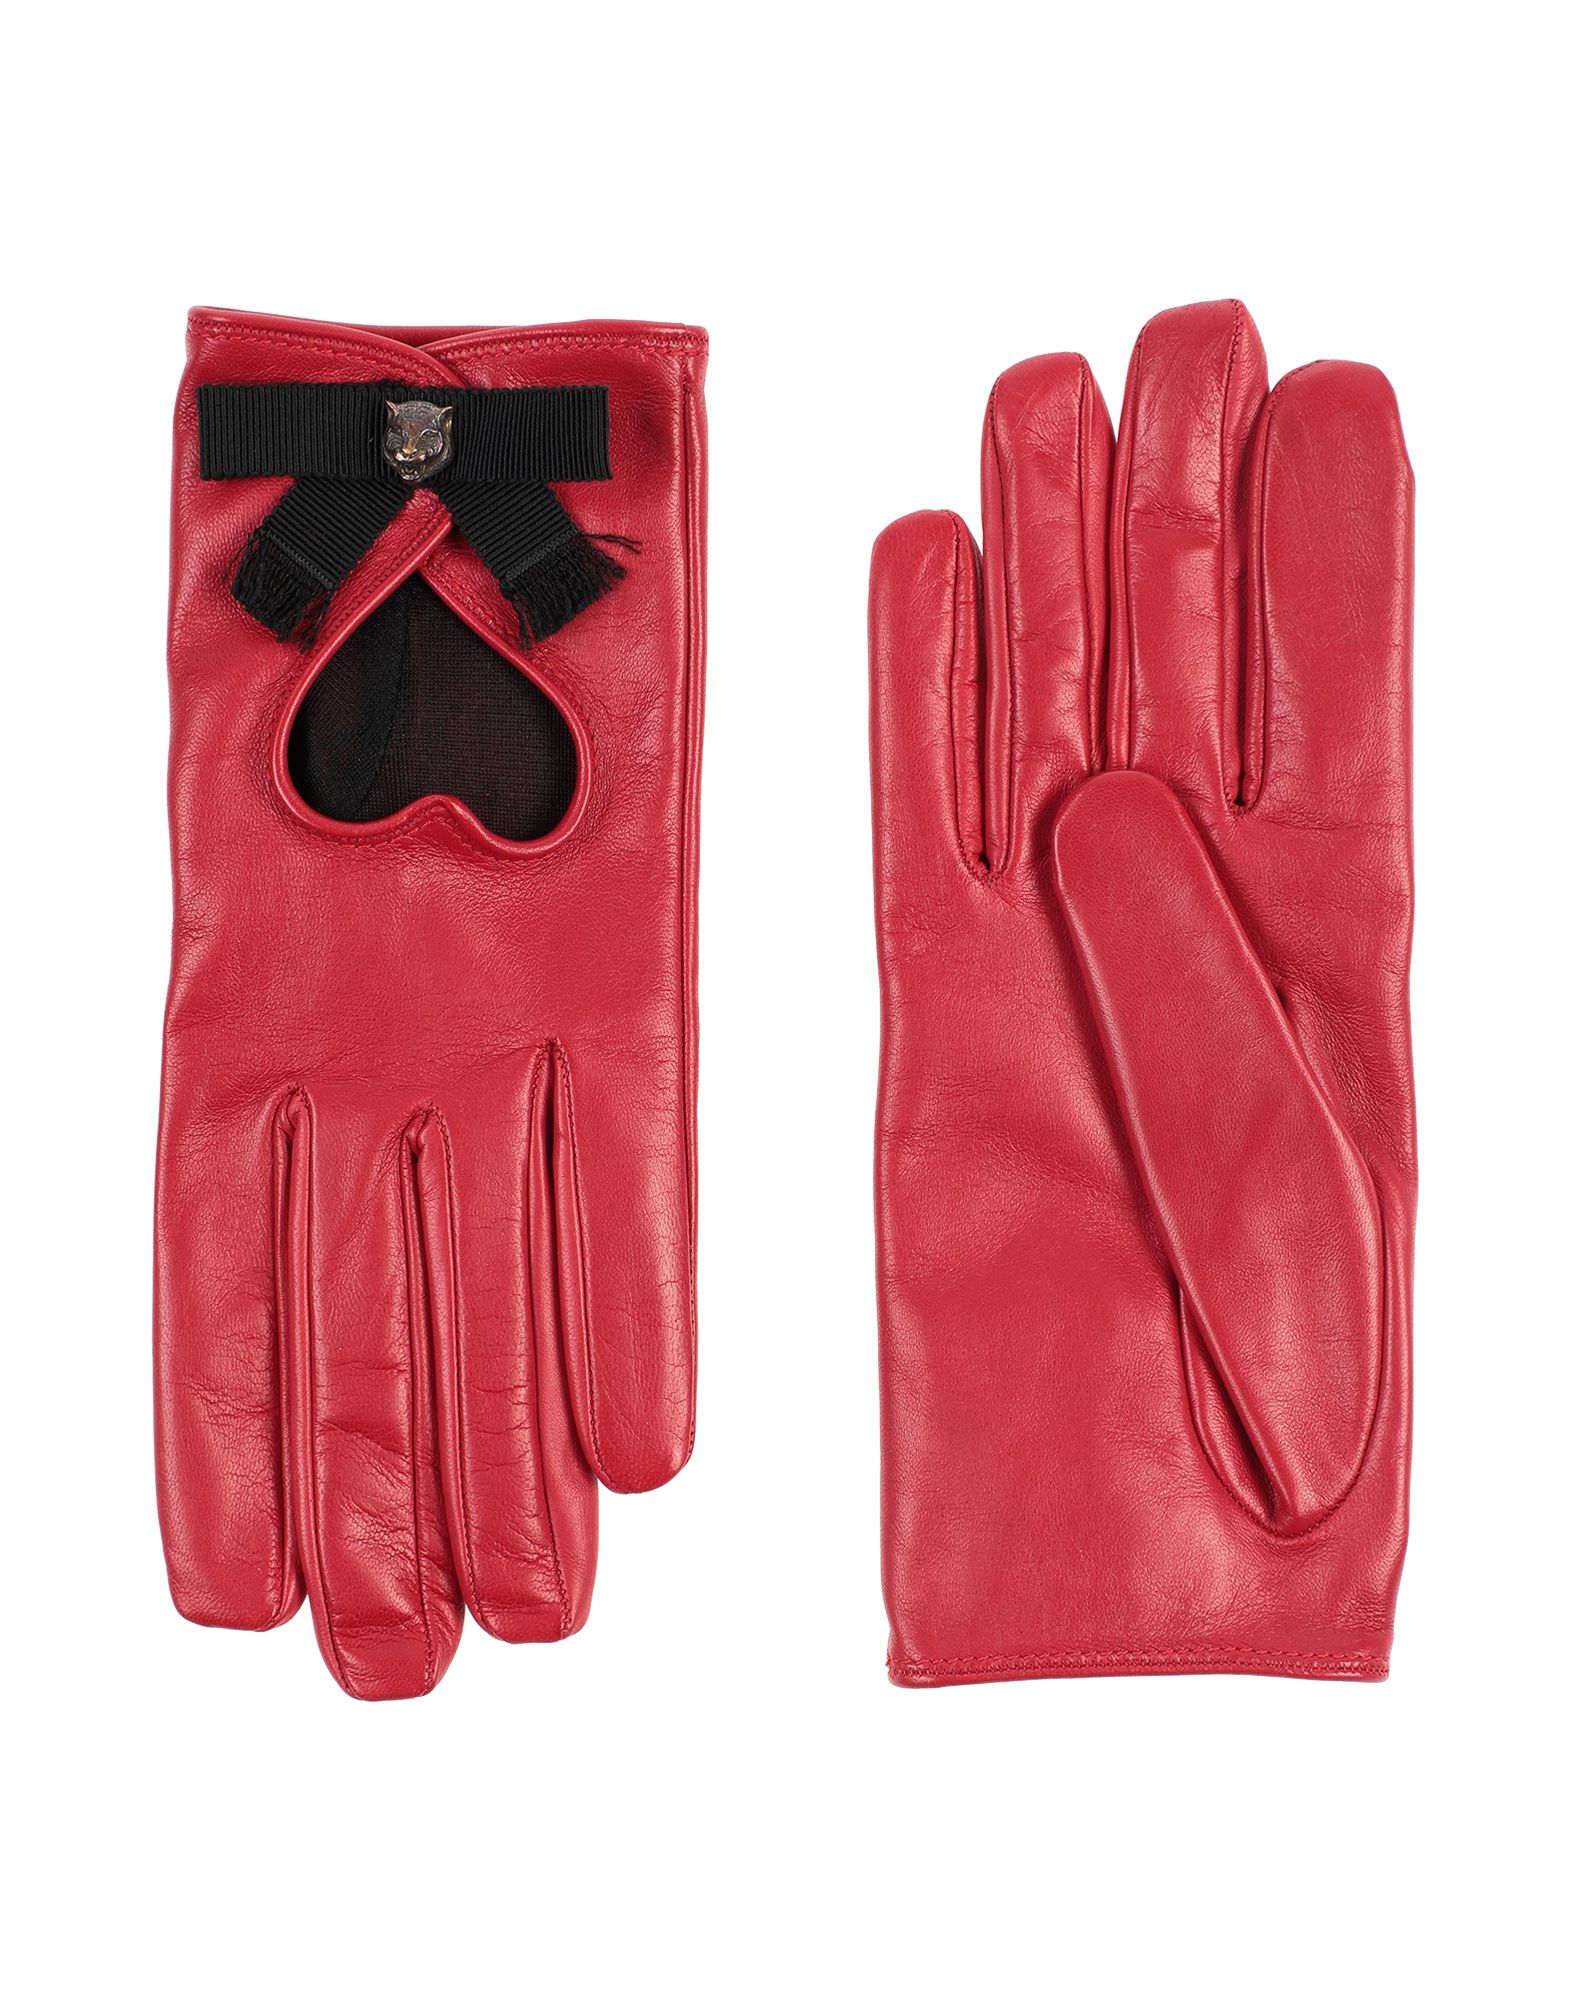 GUCCI Gloves. nappa leather, metal applications, solid color, fully lined, contains non-textile parts of animal origin. 100% Lambskin, Viscose, Cotton